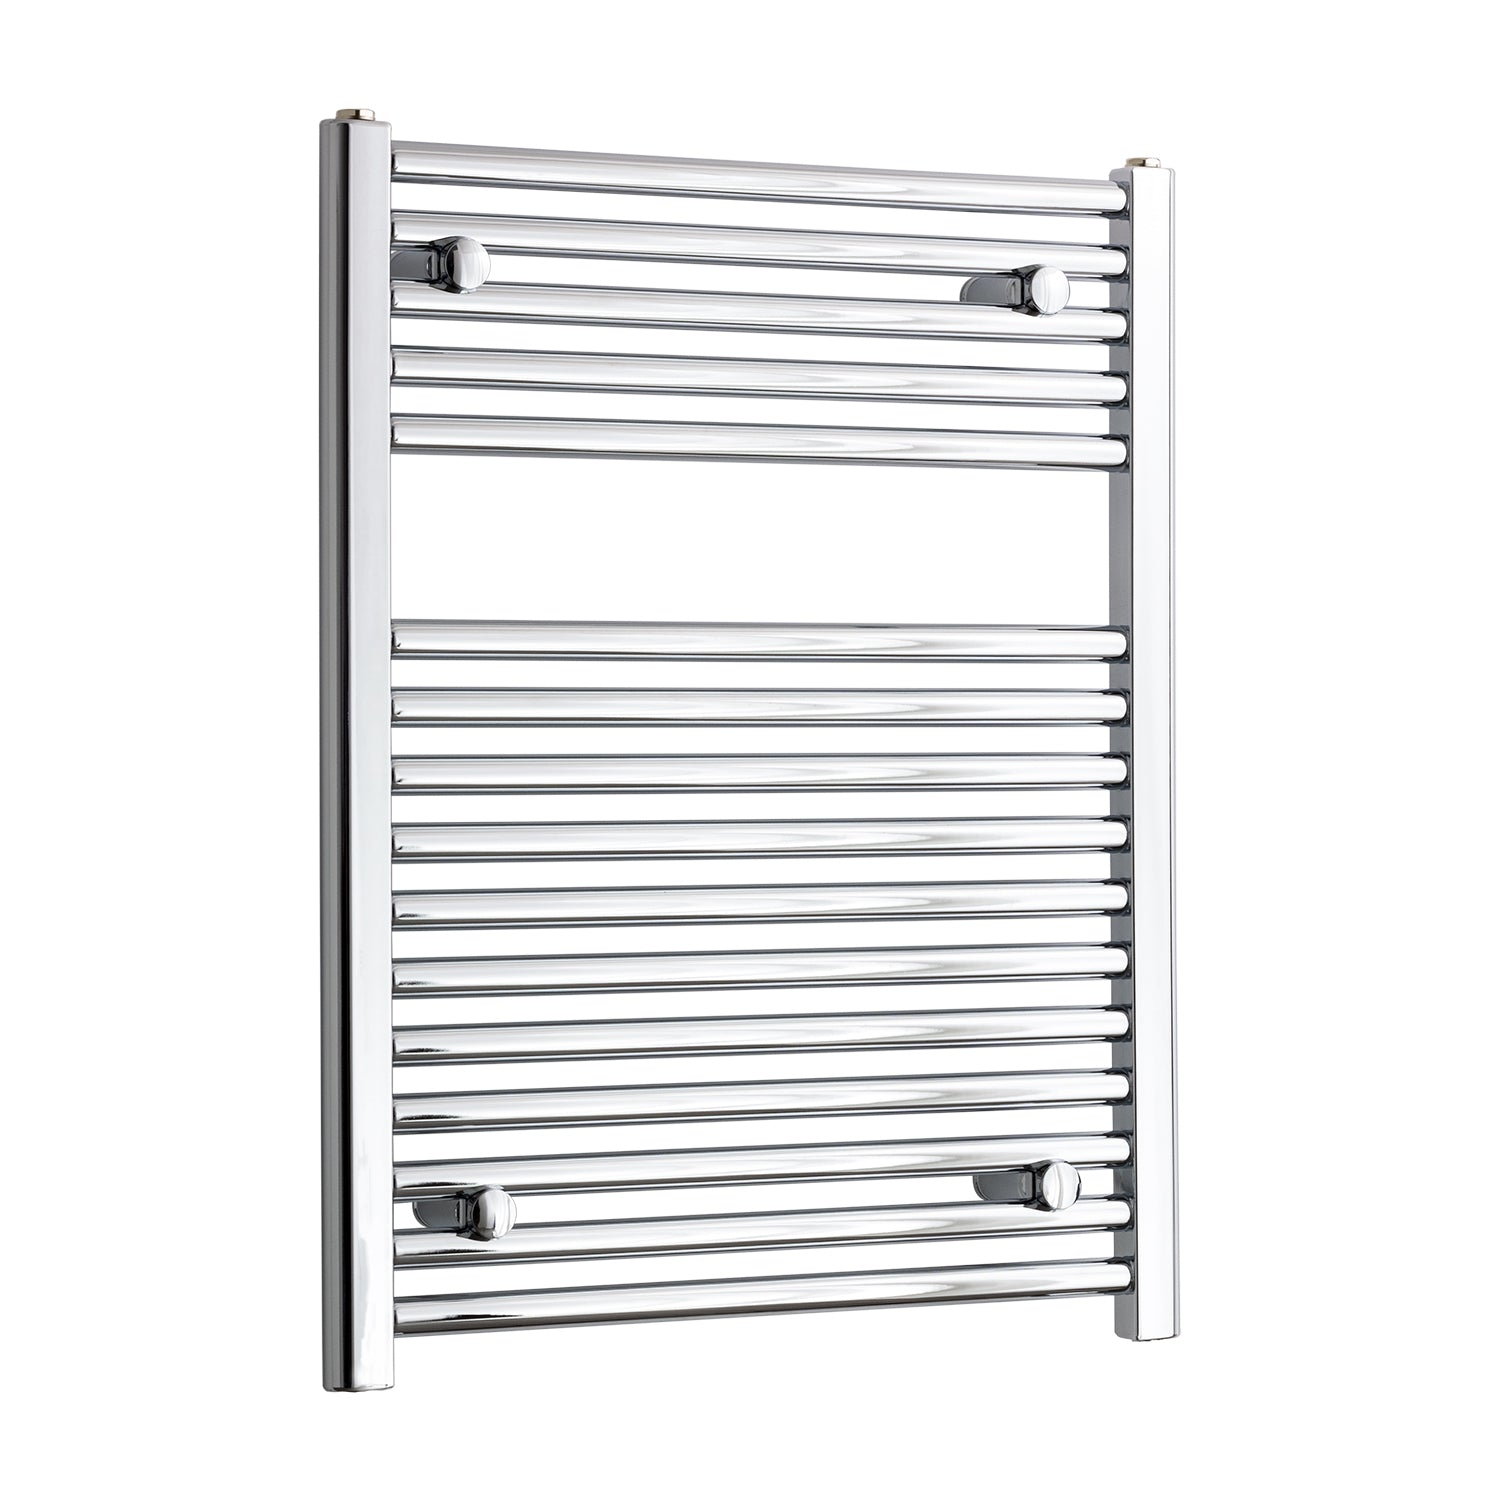 500mm Wide 750mm High Chrome Towel Rail Radiator